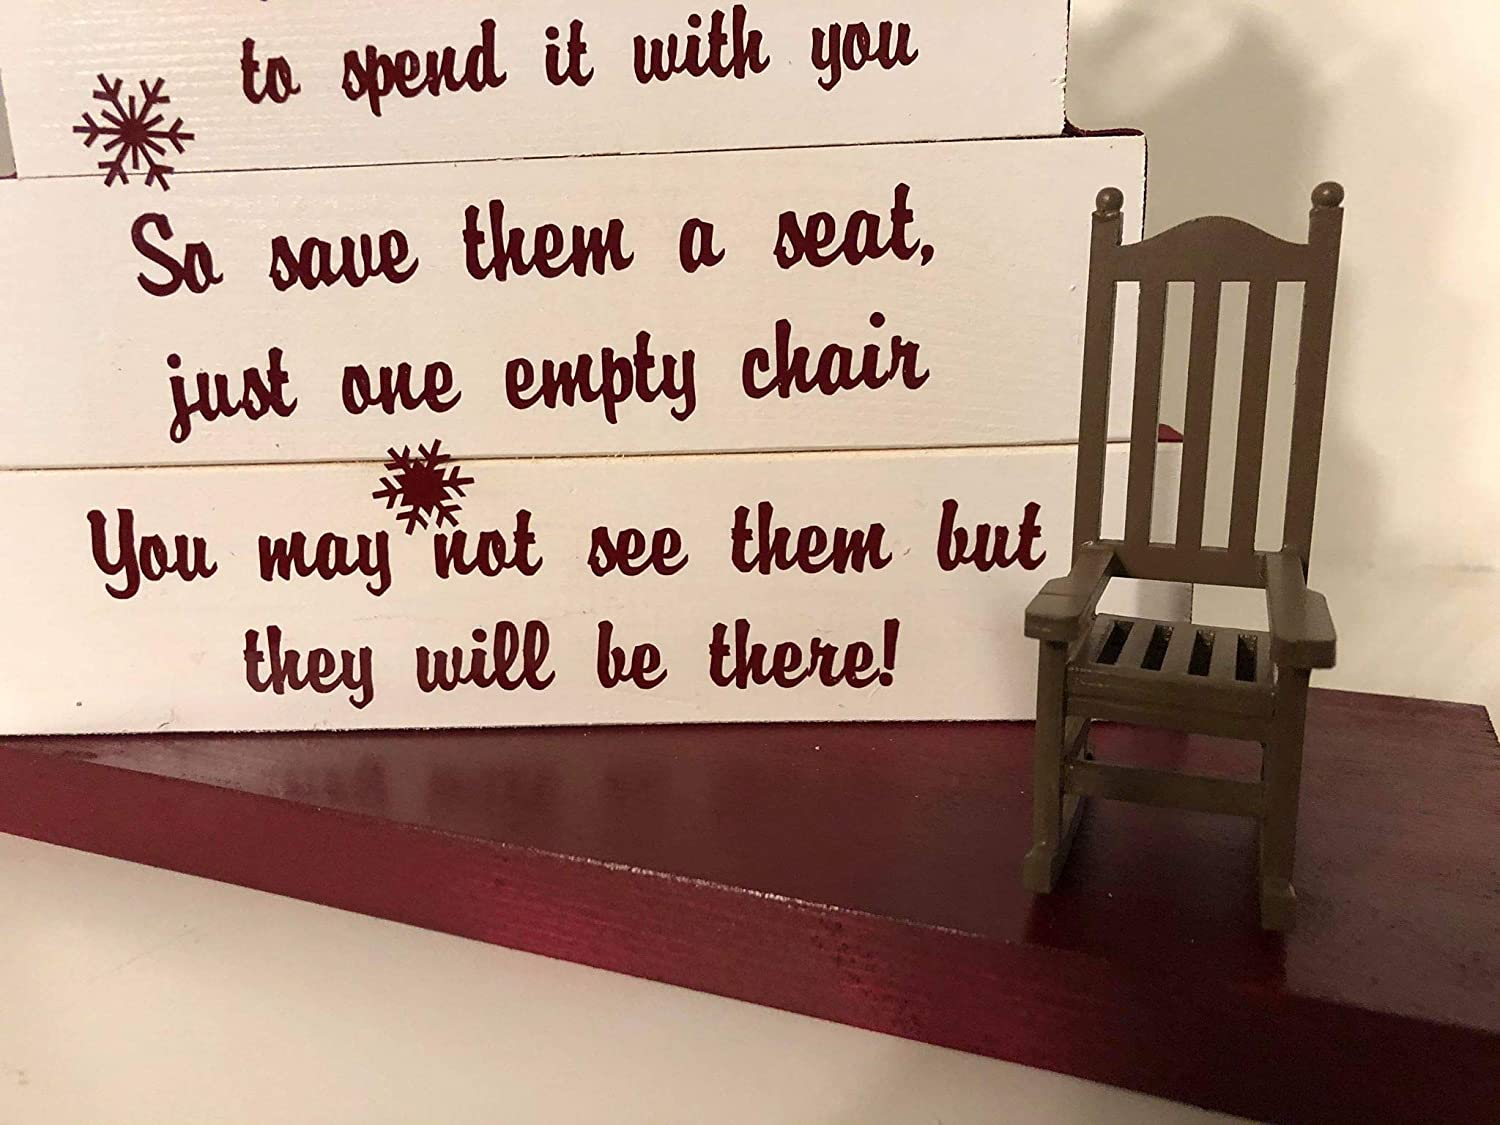 save them a seat with burgandy print and snowflakes burgandy and white ribbon with Rocking chair Christmas White one empty chair Christmas in Heaven